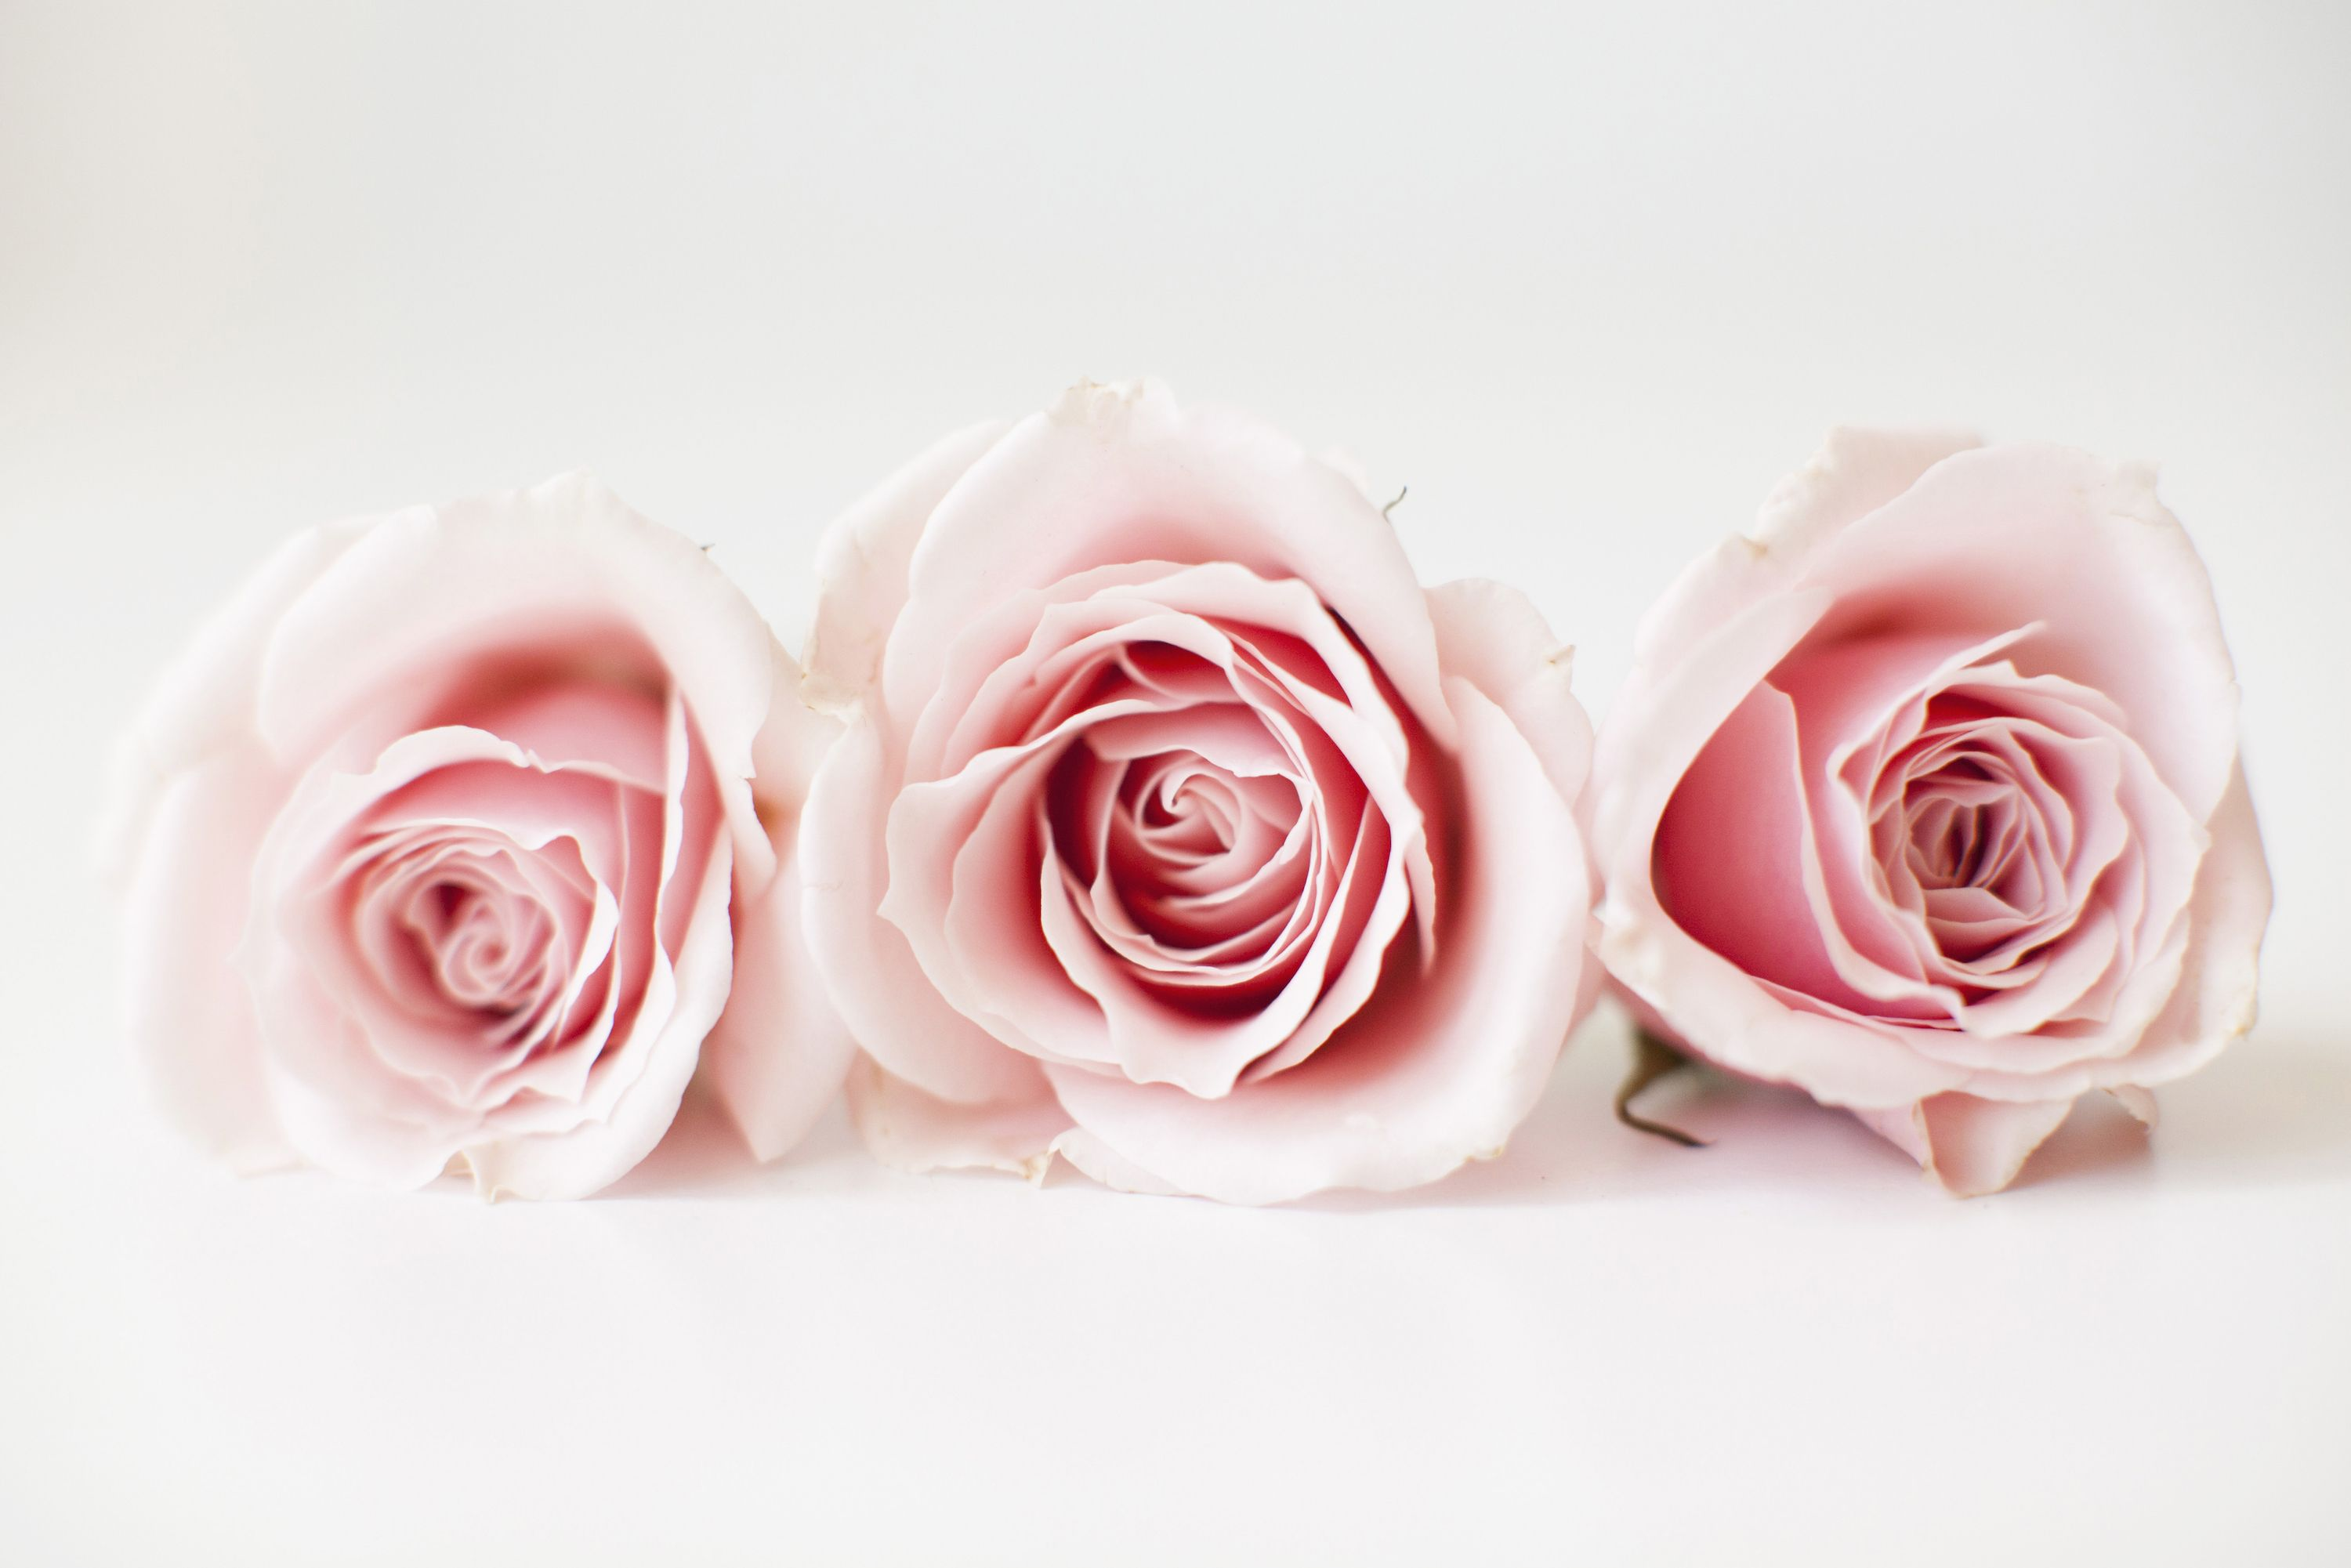 10 Rose Color Meaning Explanations Meaning Of Rose Colors